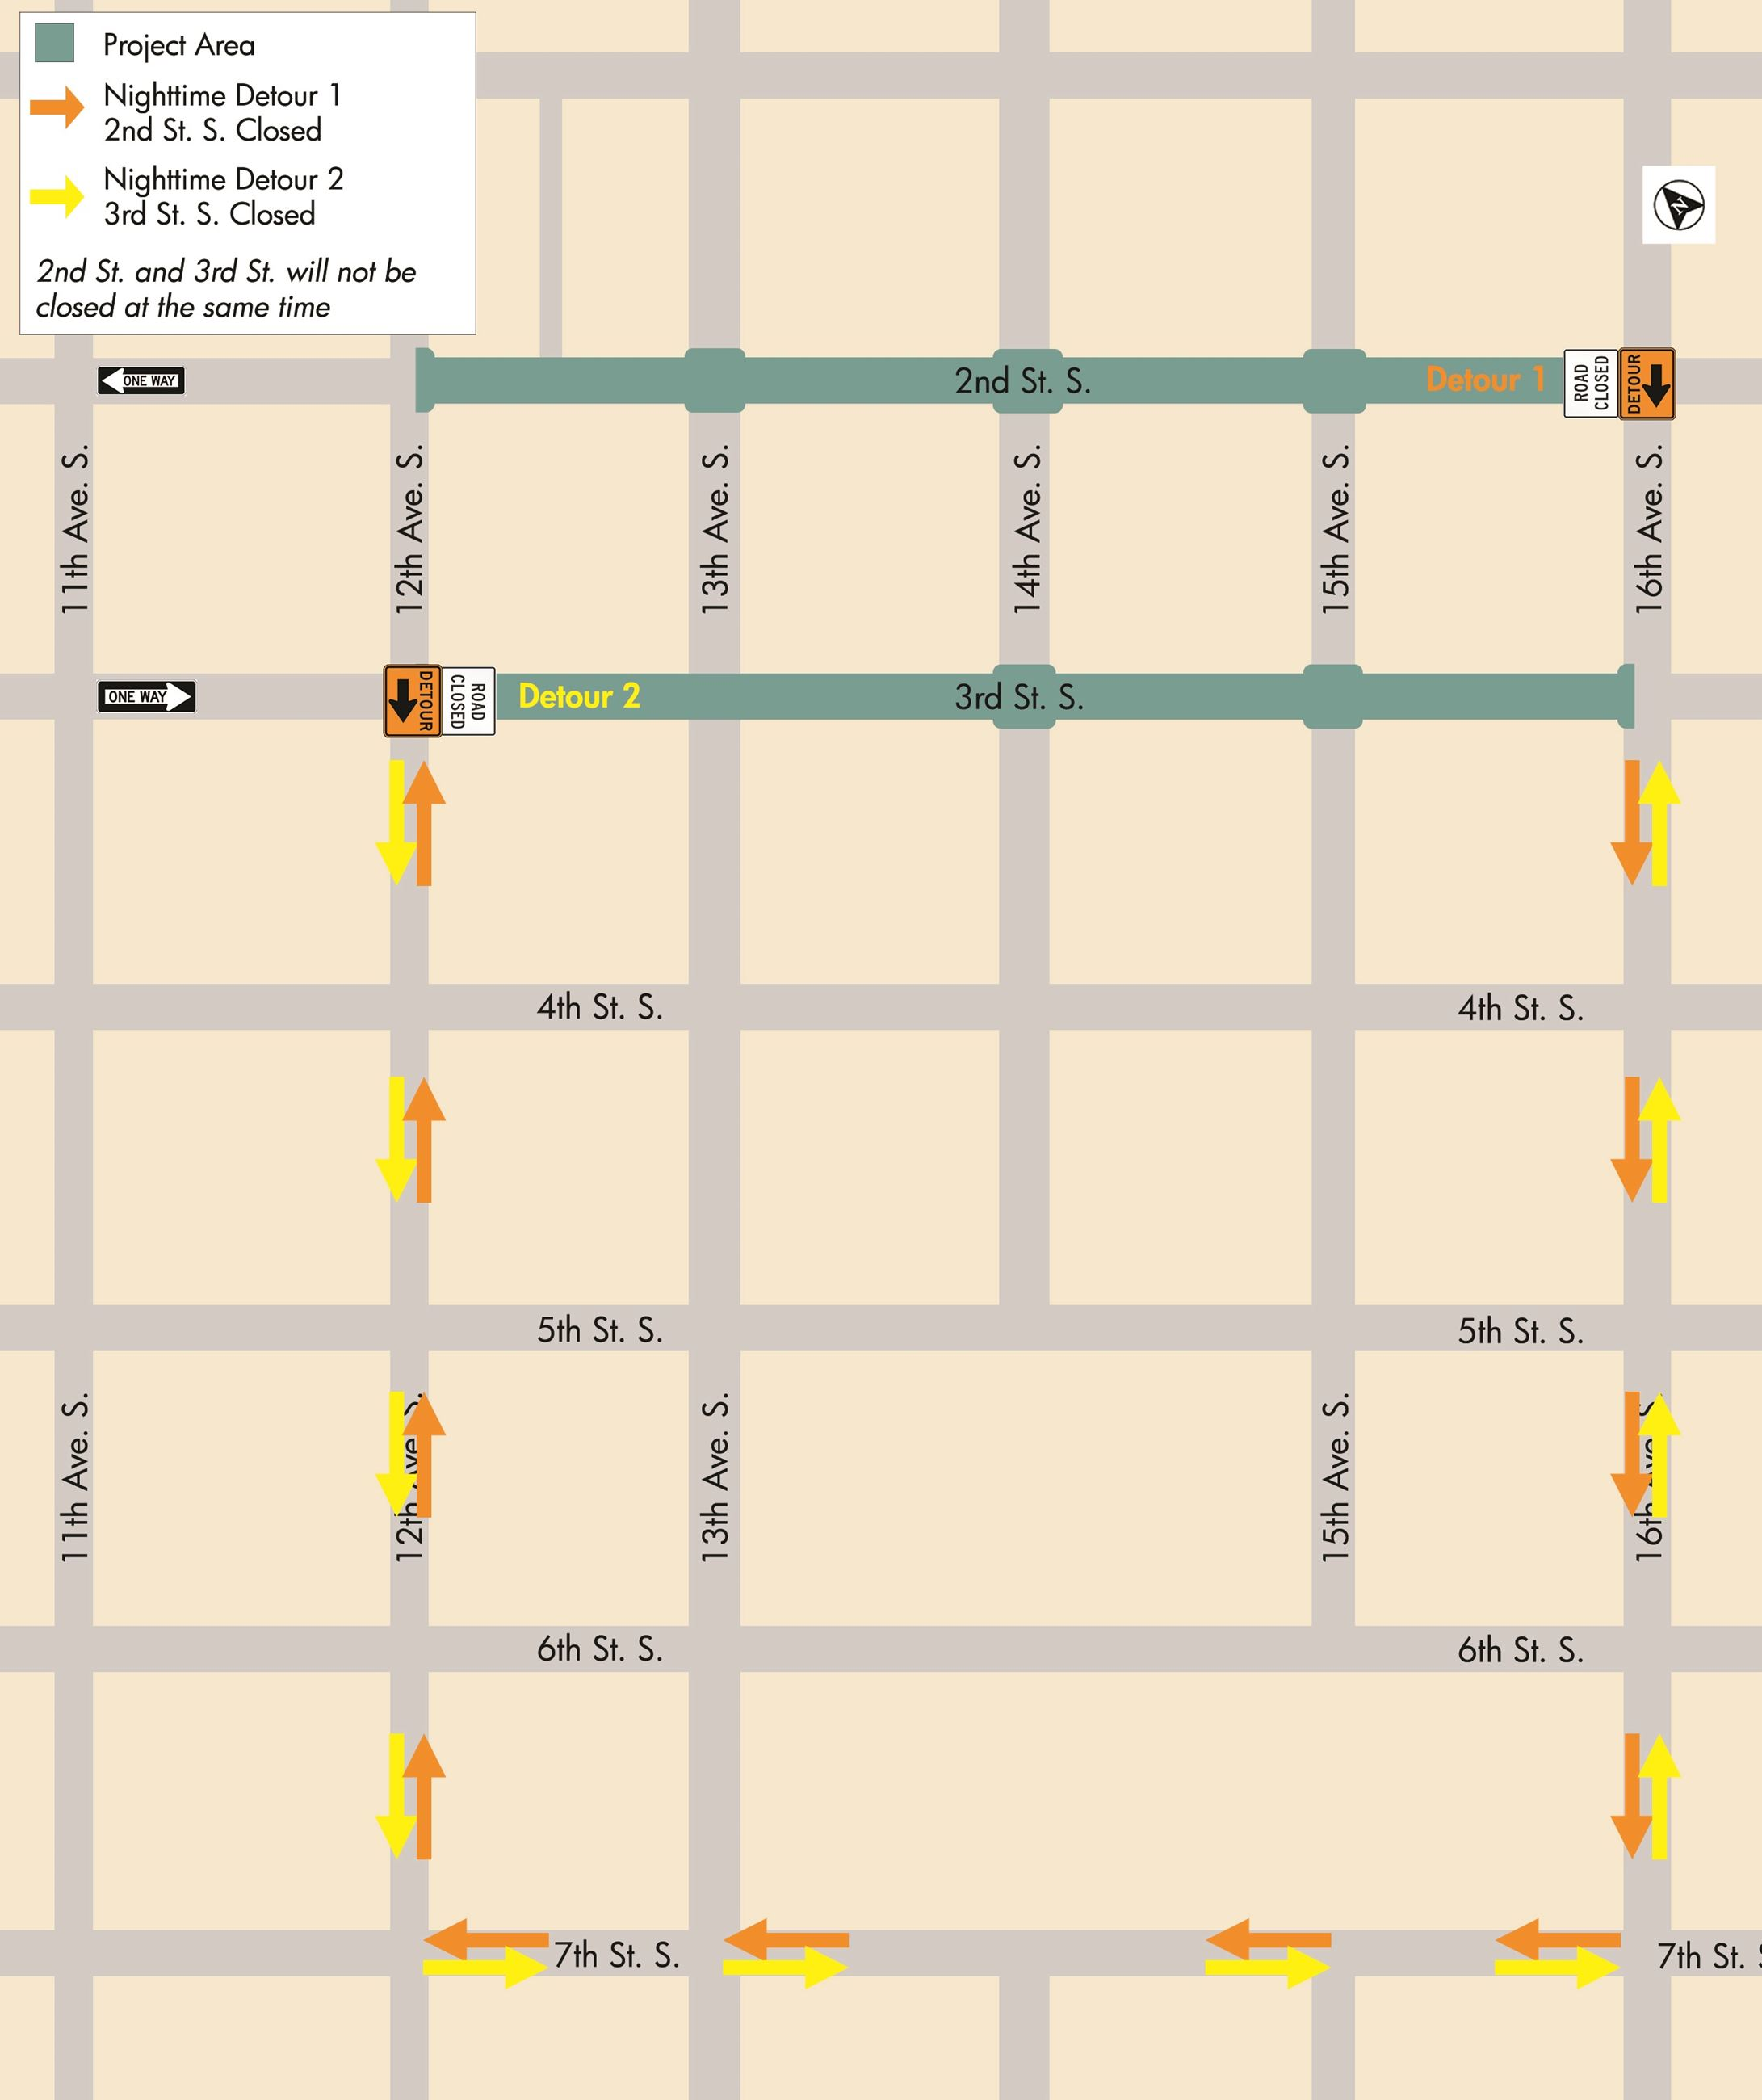 Downtown Map - nighttime detours